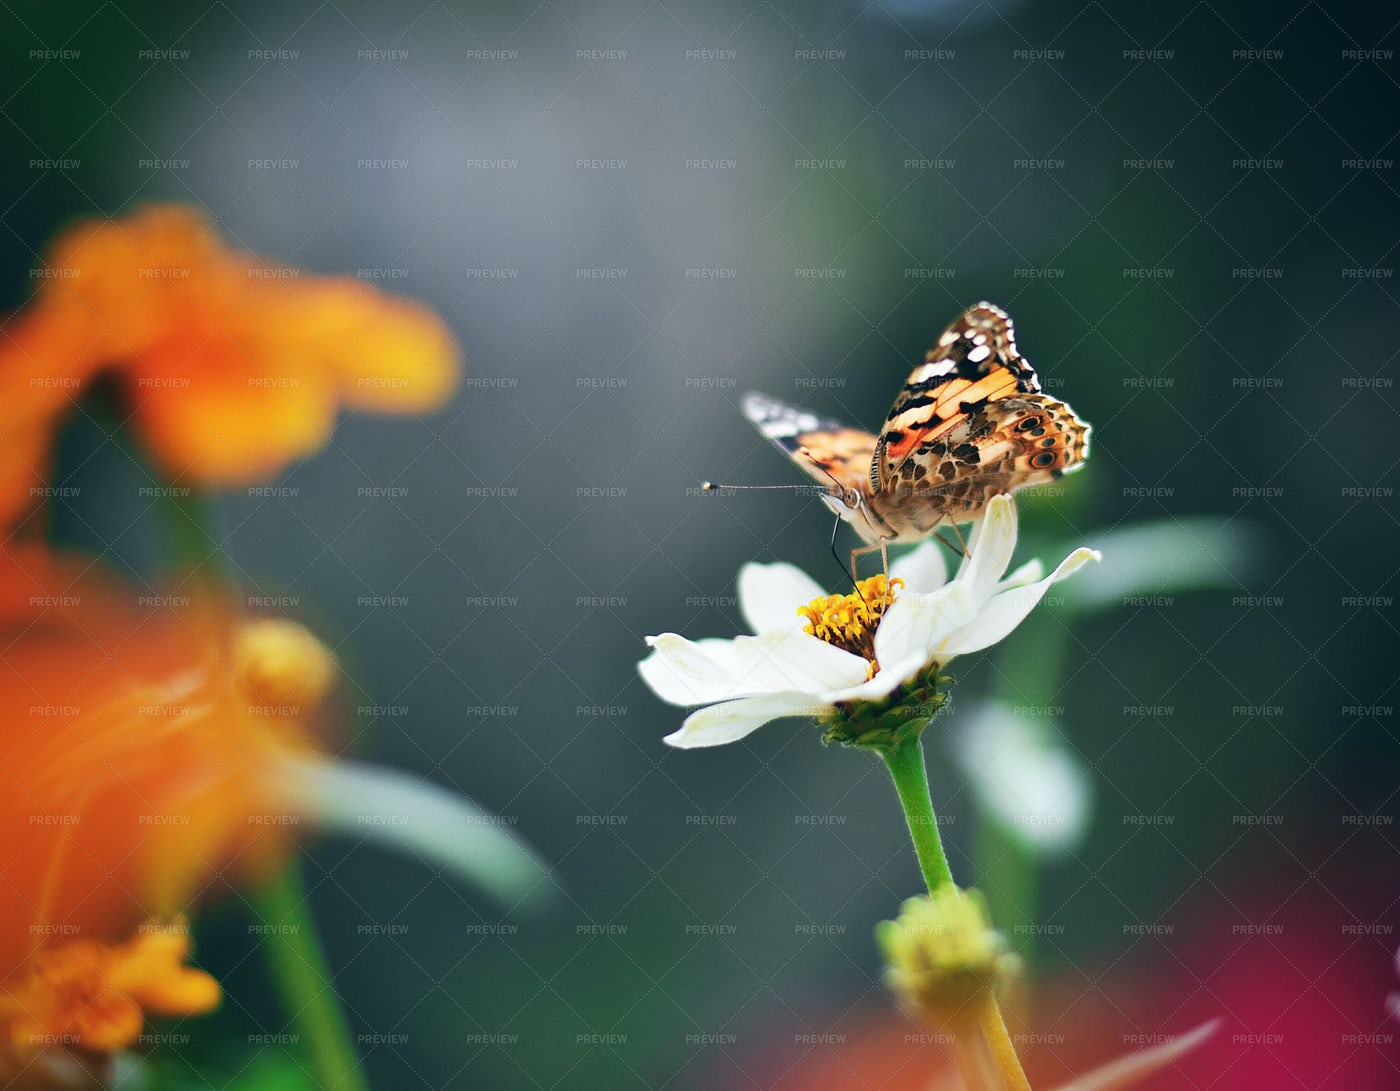 Butterfly On Flower: Stock Photos